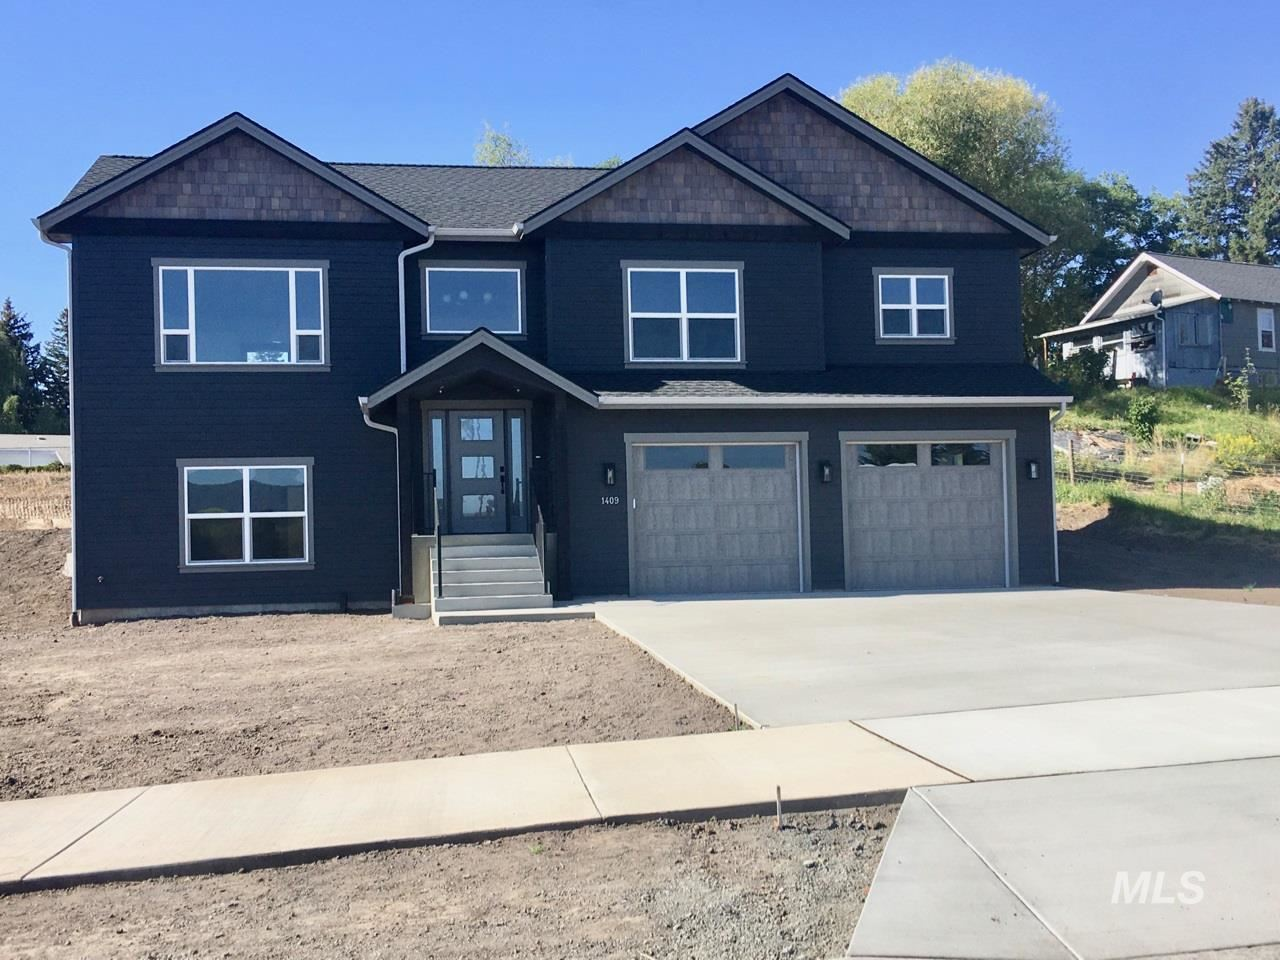 Photo of 1409 Lanny, Moscow, ID 83843 (MLS # 98768447)